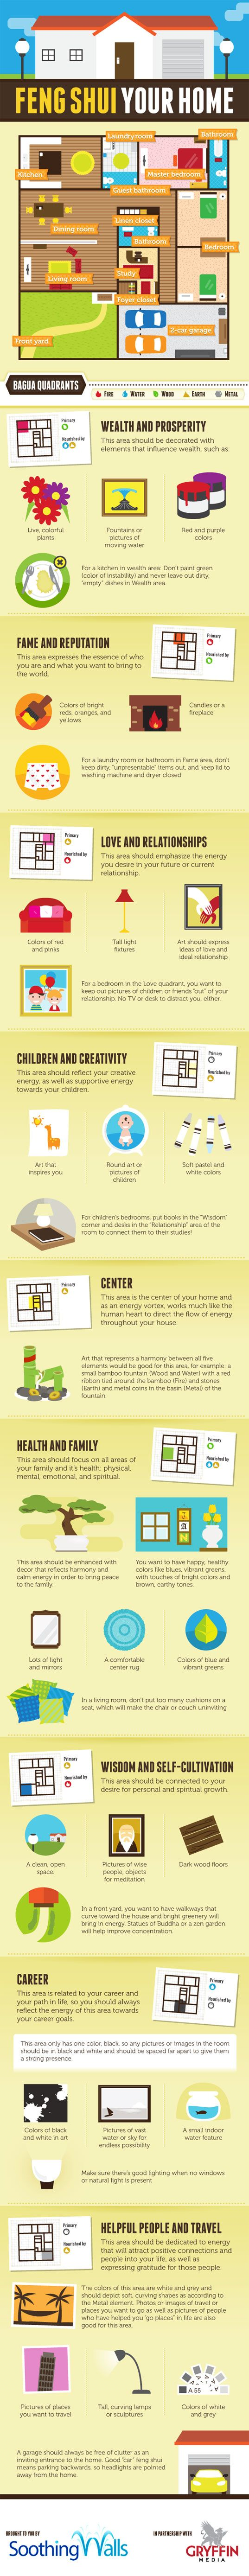 water feng shui element infographics. 27 Best Feng Shui Images On Pinterest | Home, Indoor Water Fountains And Garden Element Infographics I